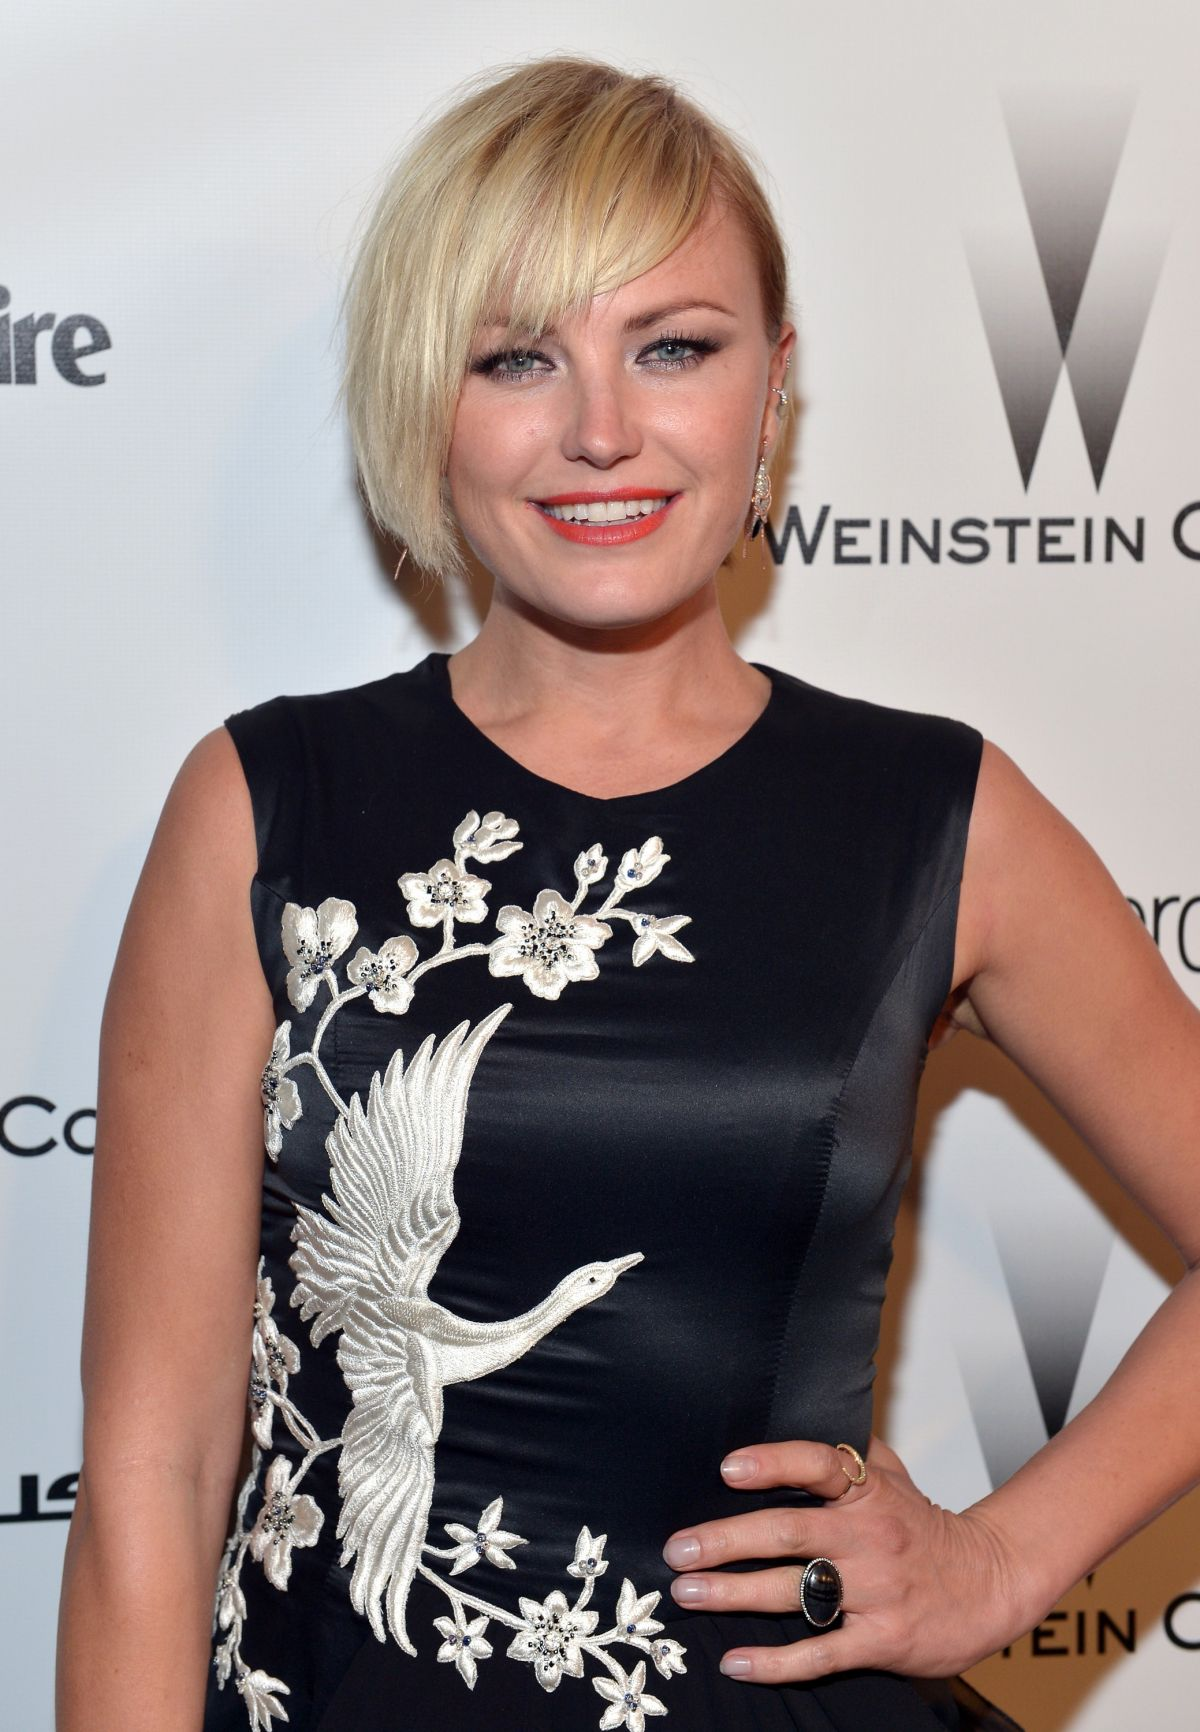 MALIN AKERMAN at The Weinstein Company and Netflix Golden Globes Party ... Malin Akerman